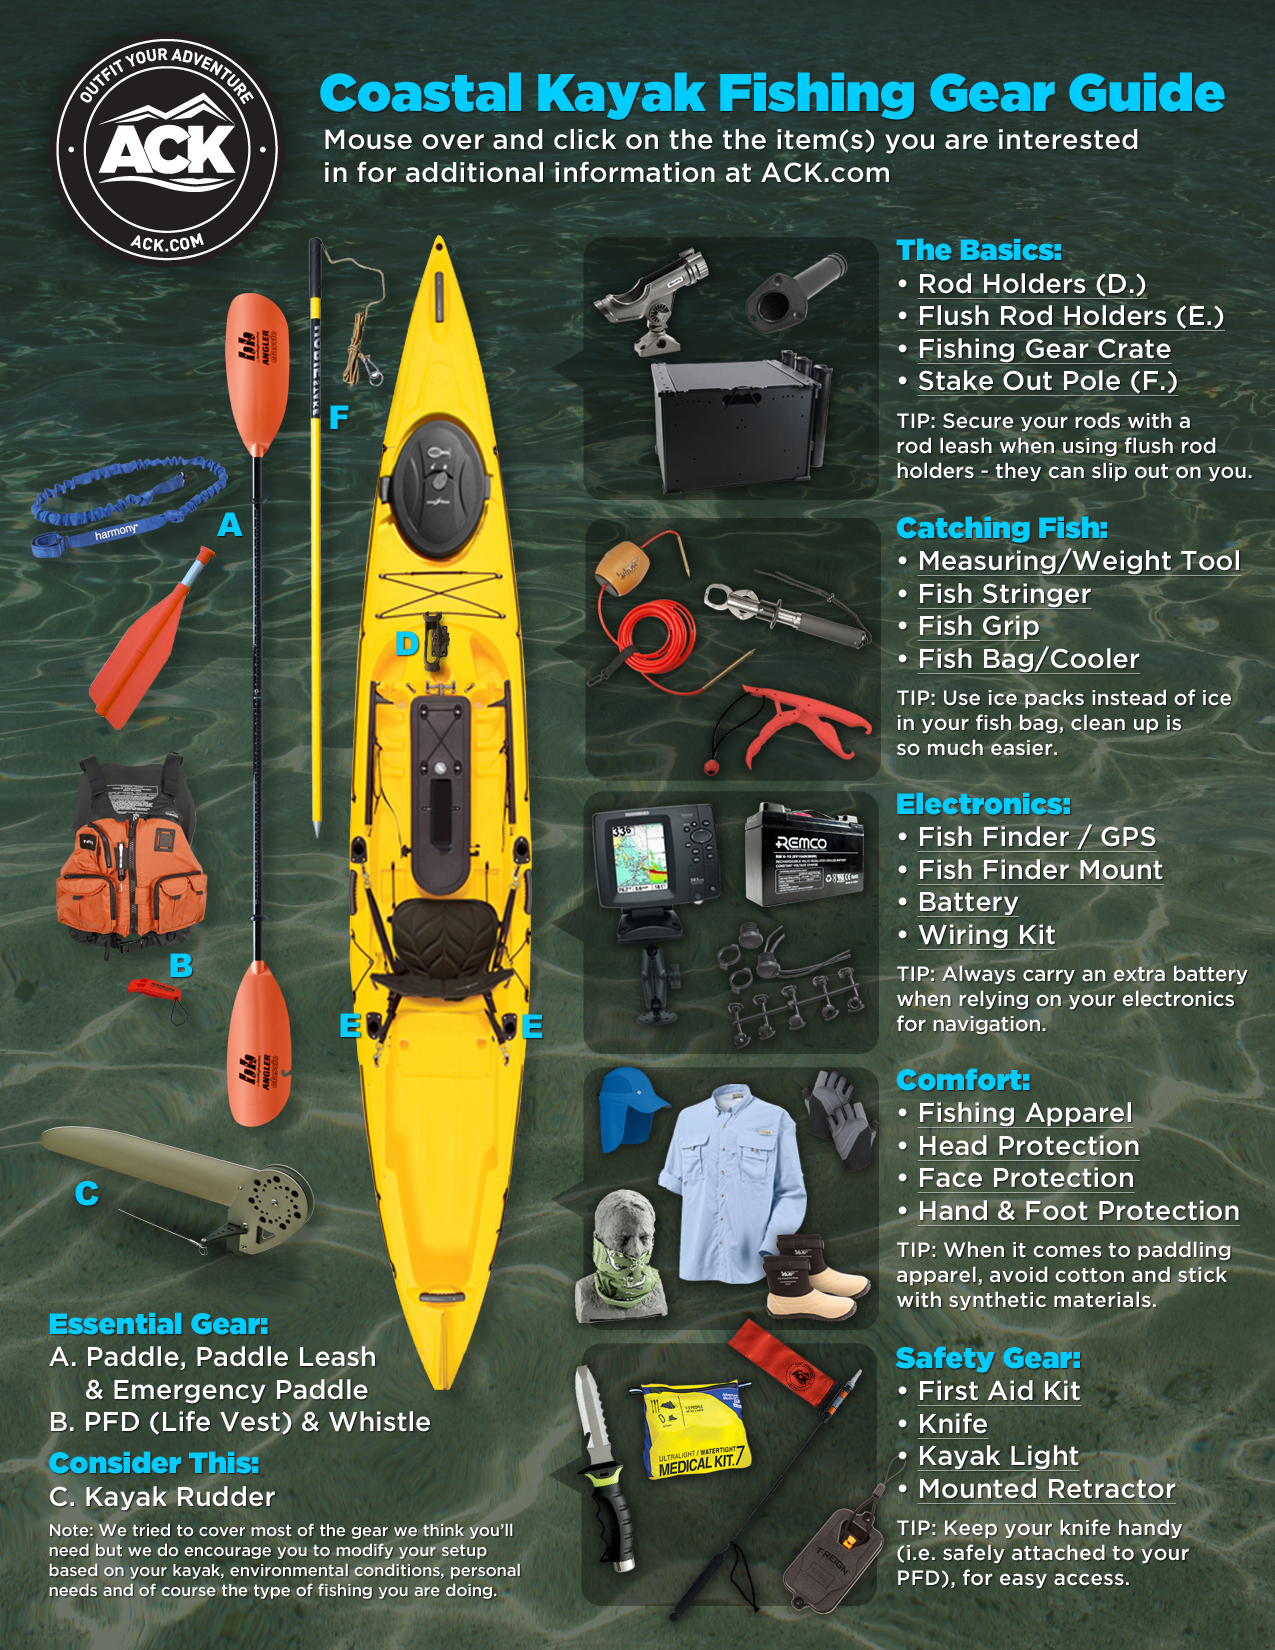 The ack coastal kayak fishing gear guide infographic for Kayak accessories for fishing